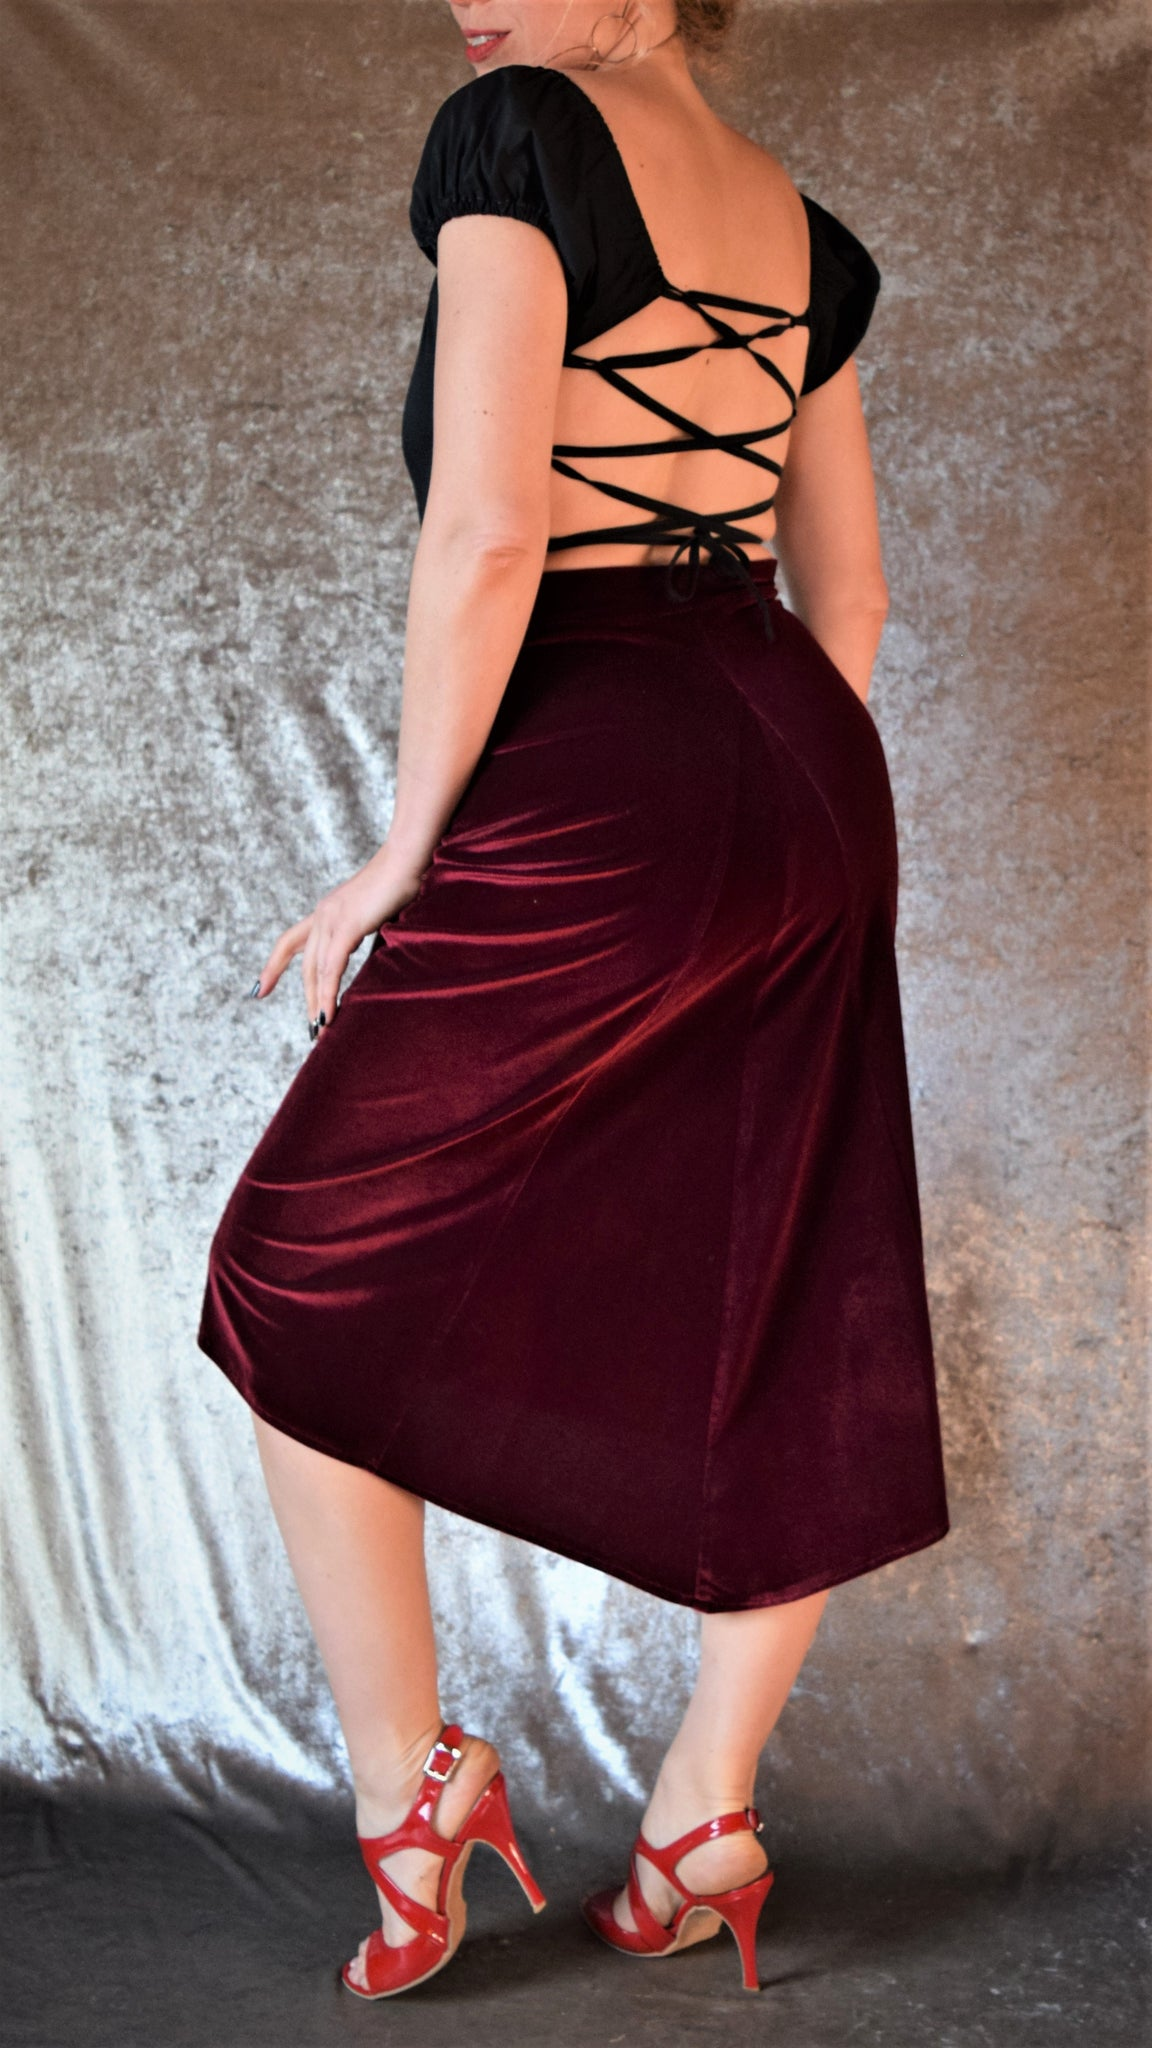 Velvet Godet Back Skirt (Shown in Burgundy Wine) - Choose Your Size and Color